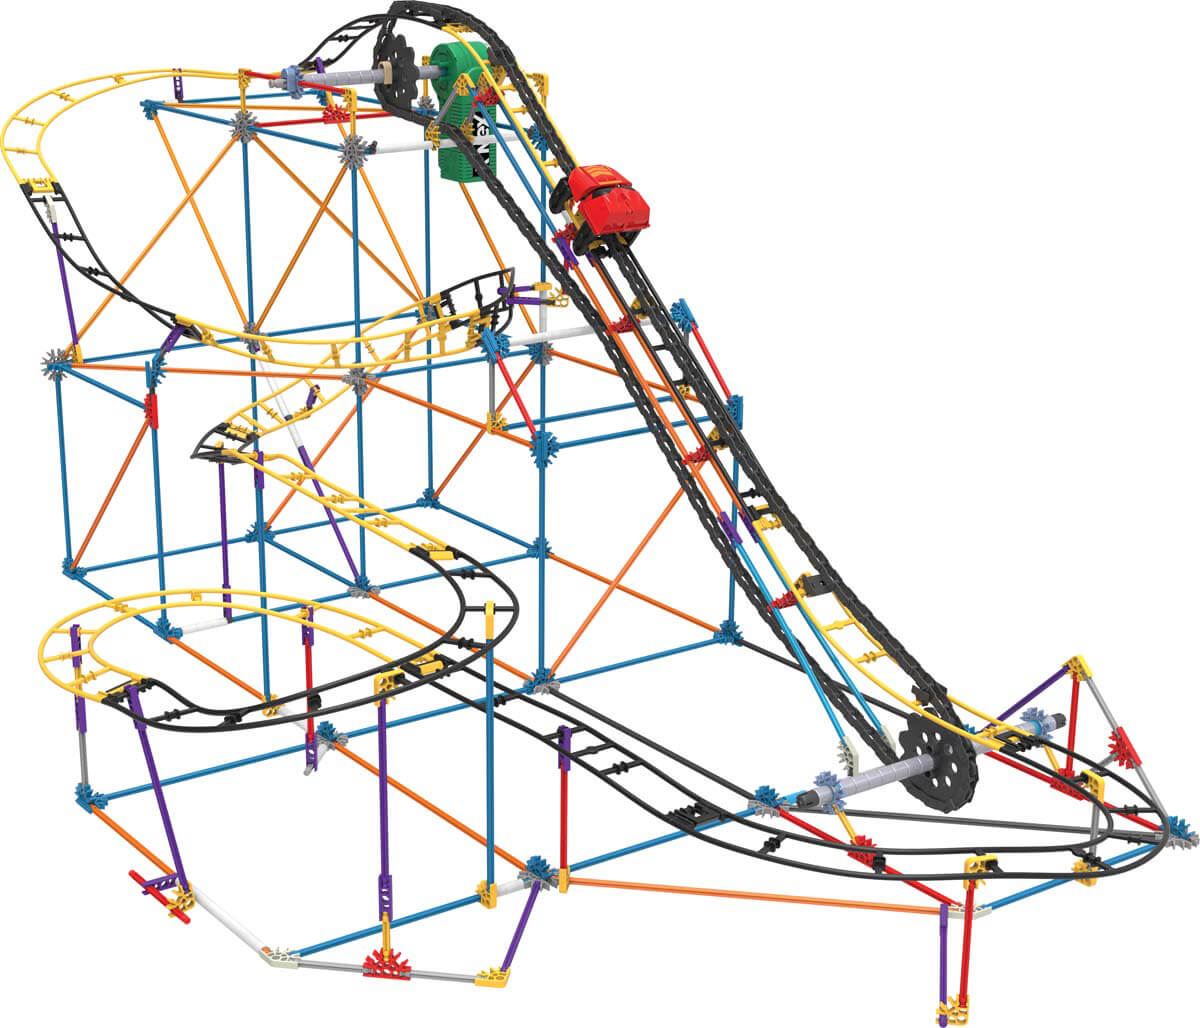 Top Stem Gifts For Kids Hackbright Academy Snap Circuits Sound Light Combo By Elenco On Barstons Childs Play Knex May Be Best Known Lincoln Logs Fantastic Toys In Their Own Right But More Ambitious Little Engineers The Roller Coaster Set Is